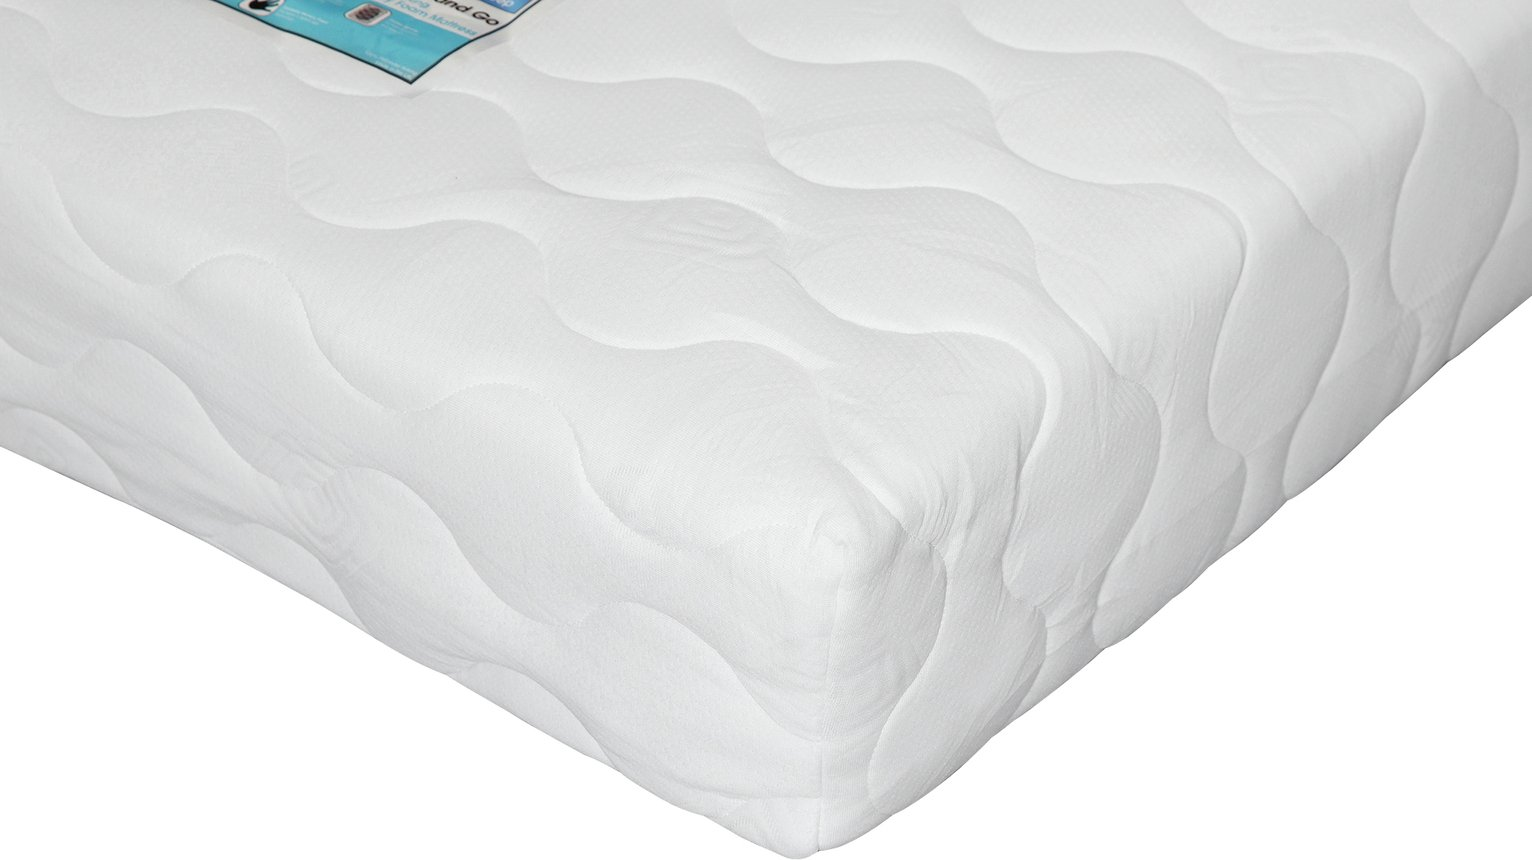 Image of I-Sleep - Collect and Go Pocket - Single Memory Foam Mattress